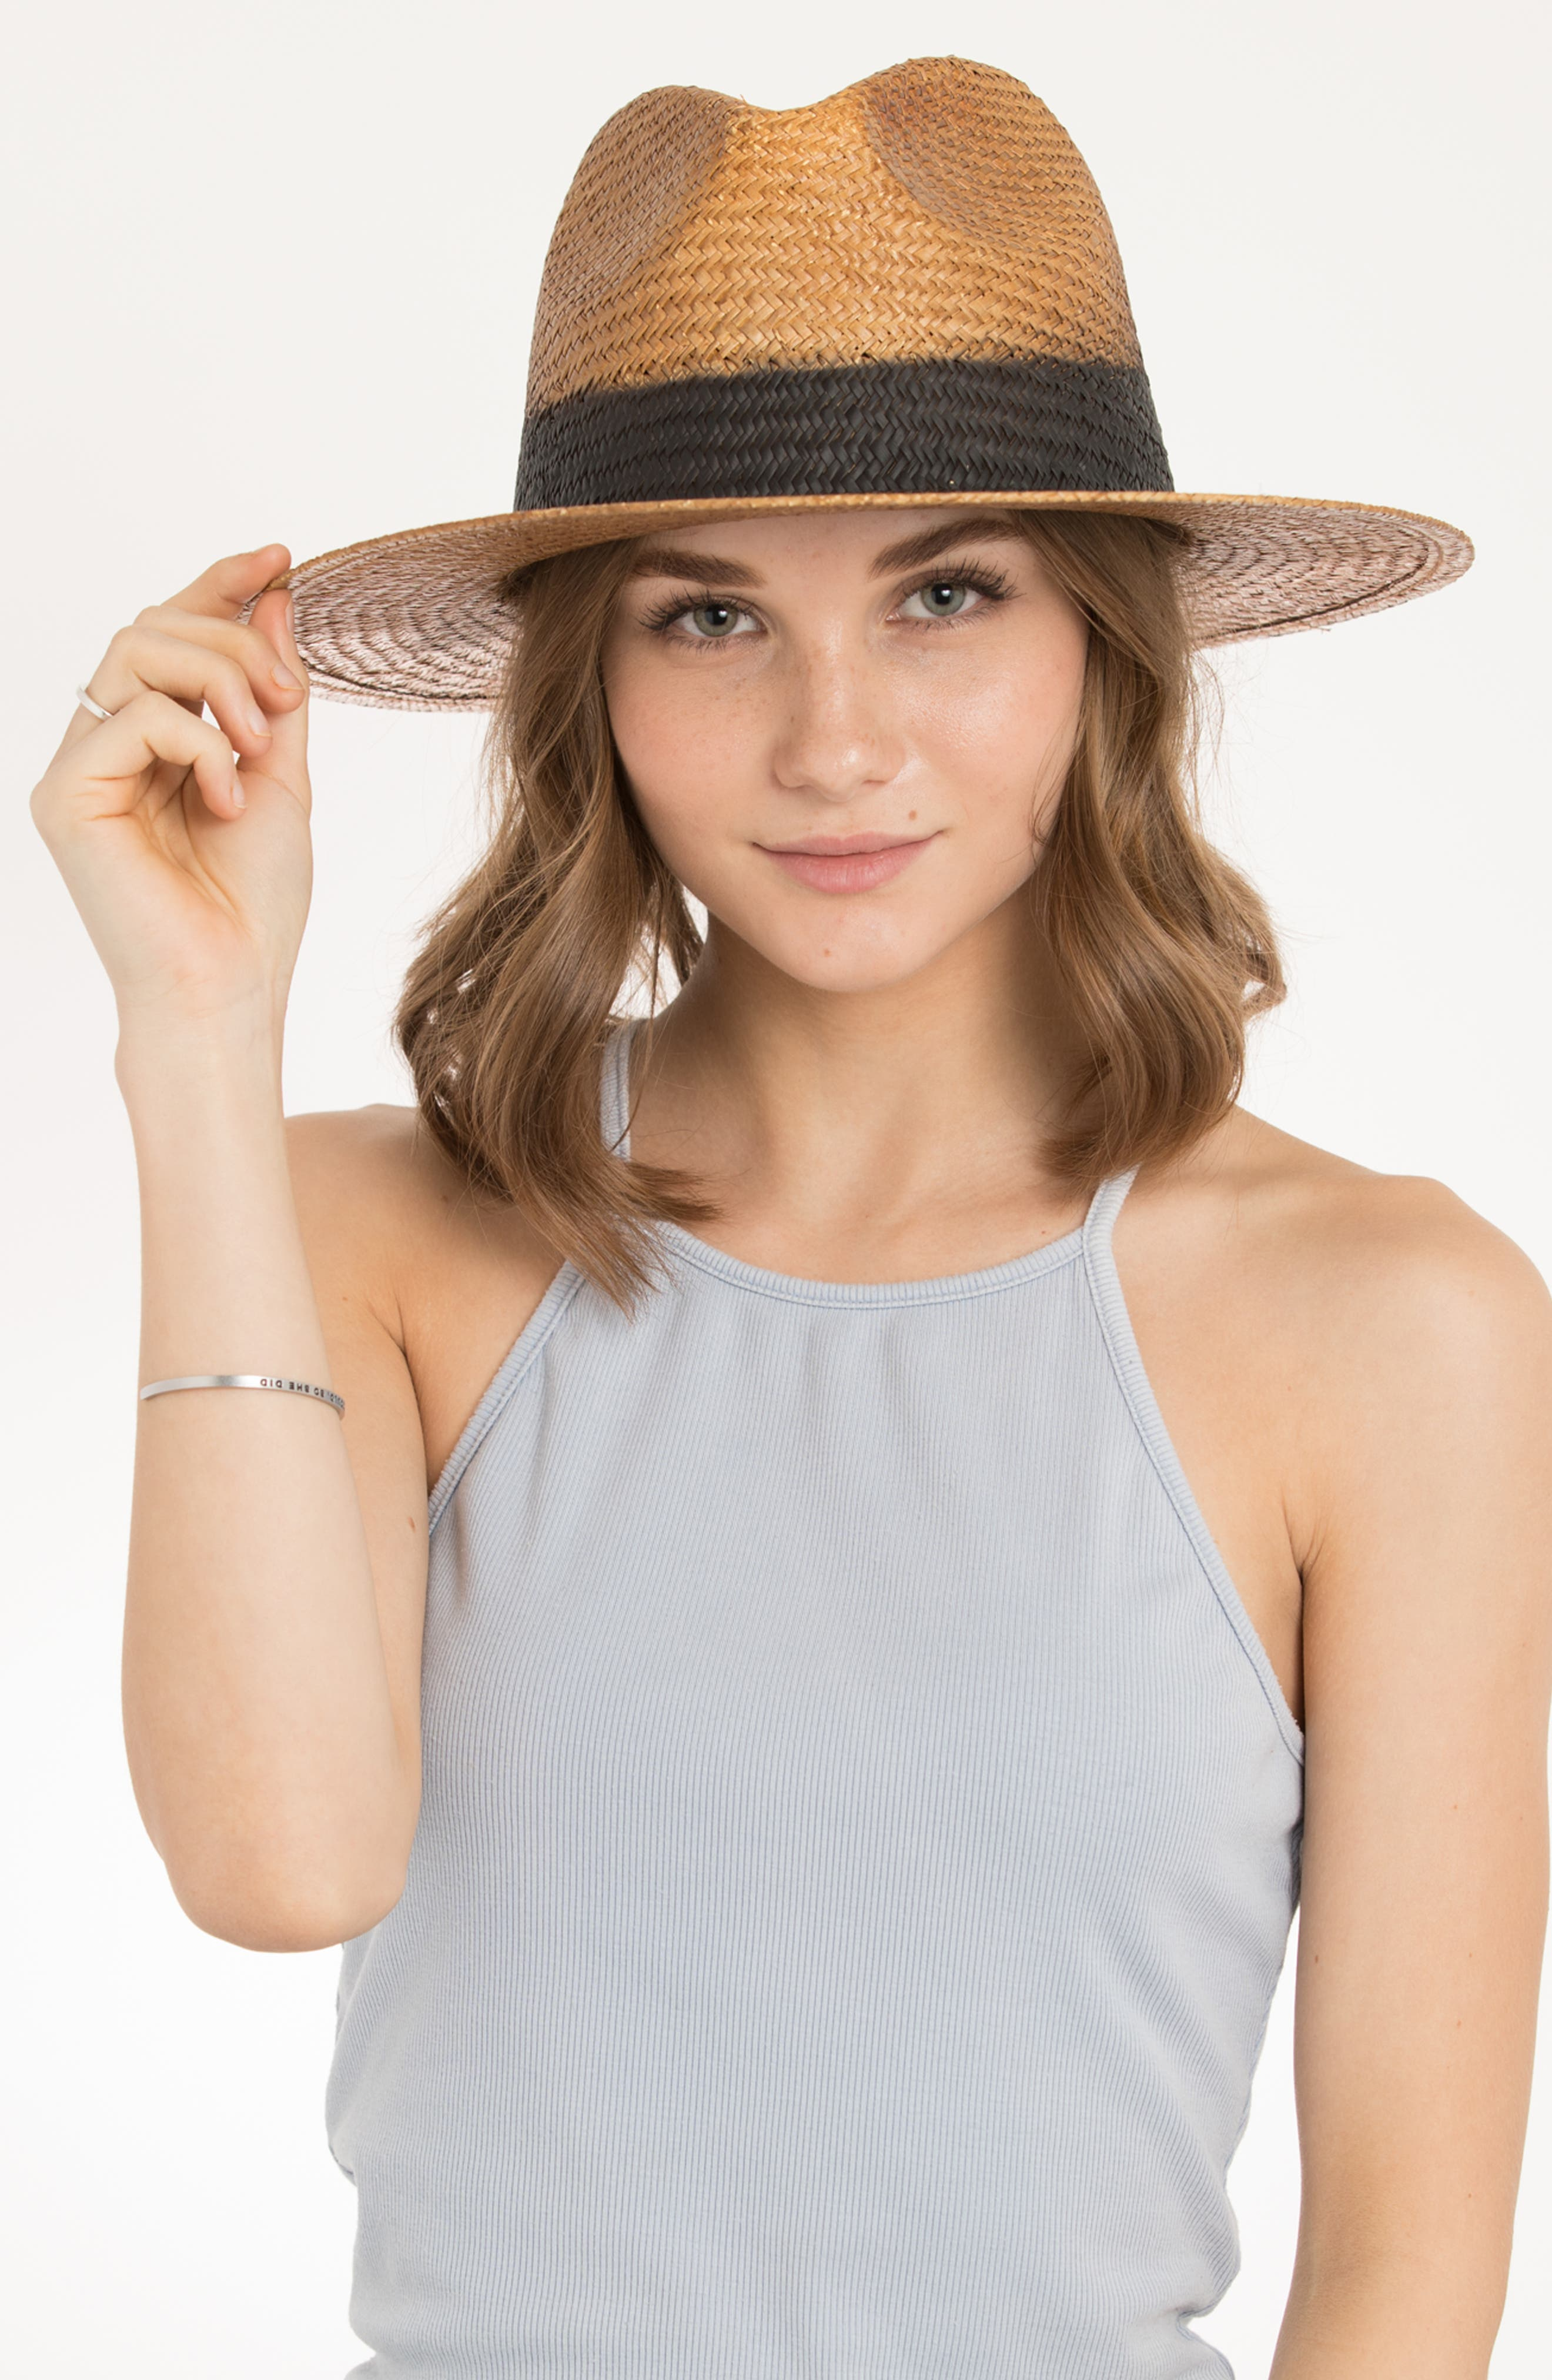 Cayenne Straw Resort Hat,                             Alternate thumbnail 2, color,                             230